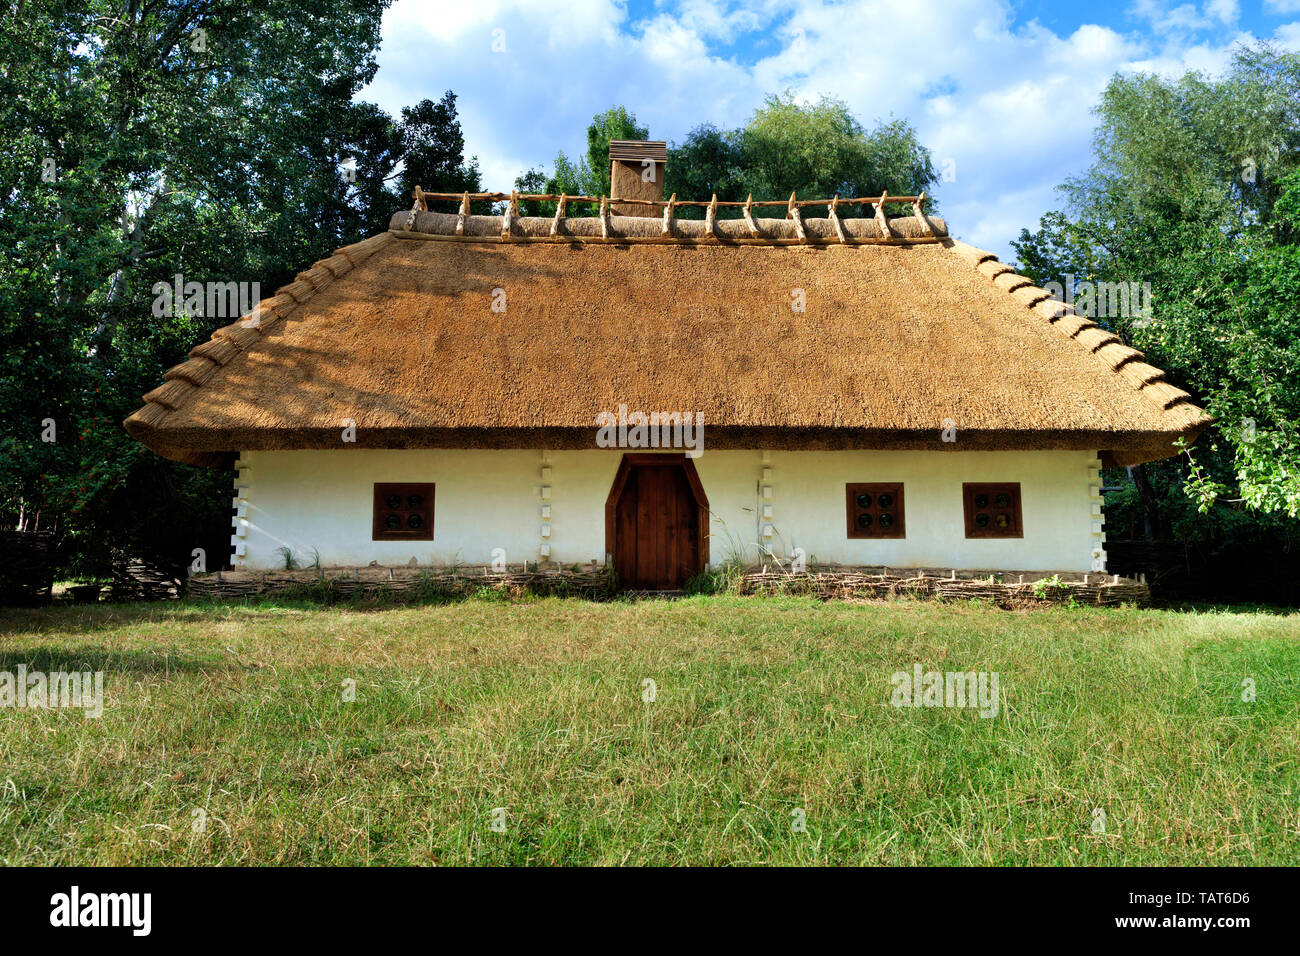 Old traditional Ukrainian rural house with a thatched roof and a wicker fence in the garden with green grass and copy space against a blue sky with a  Stock Photo